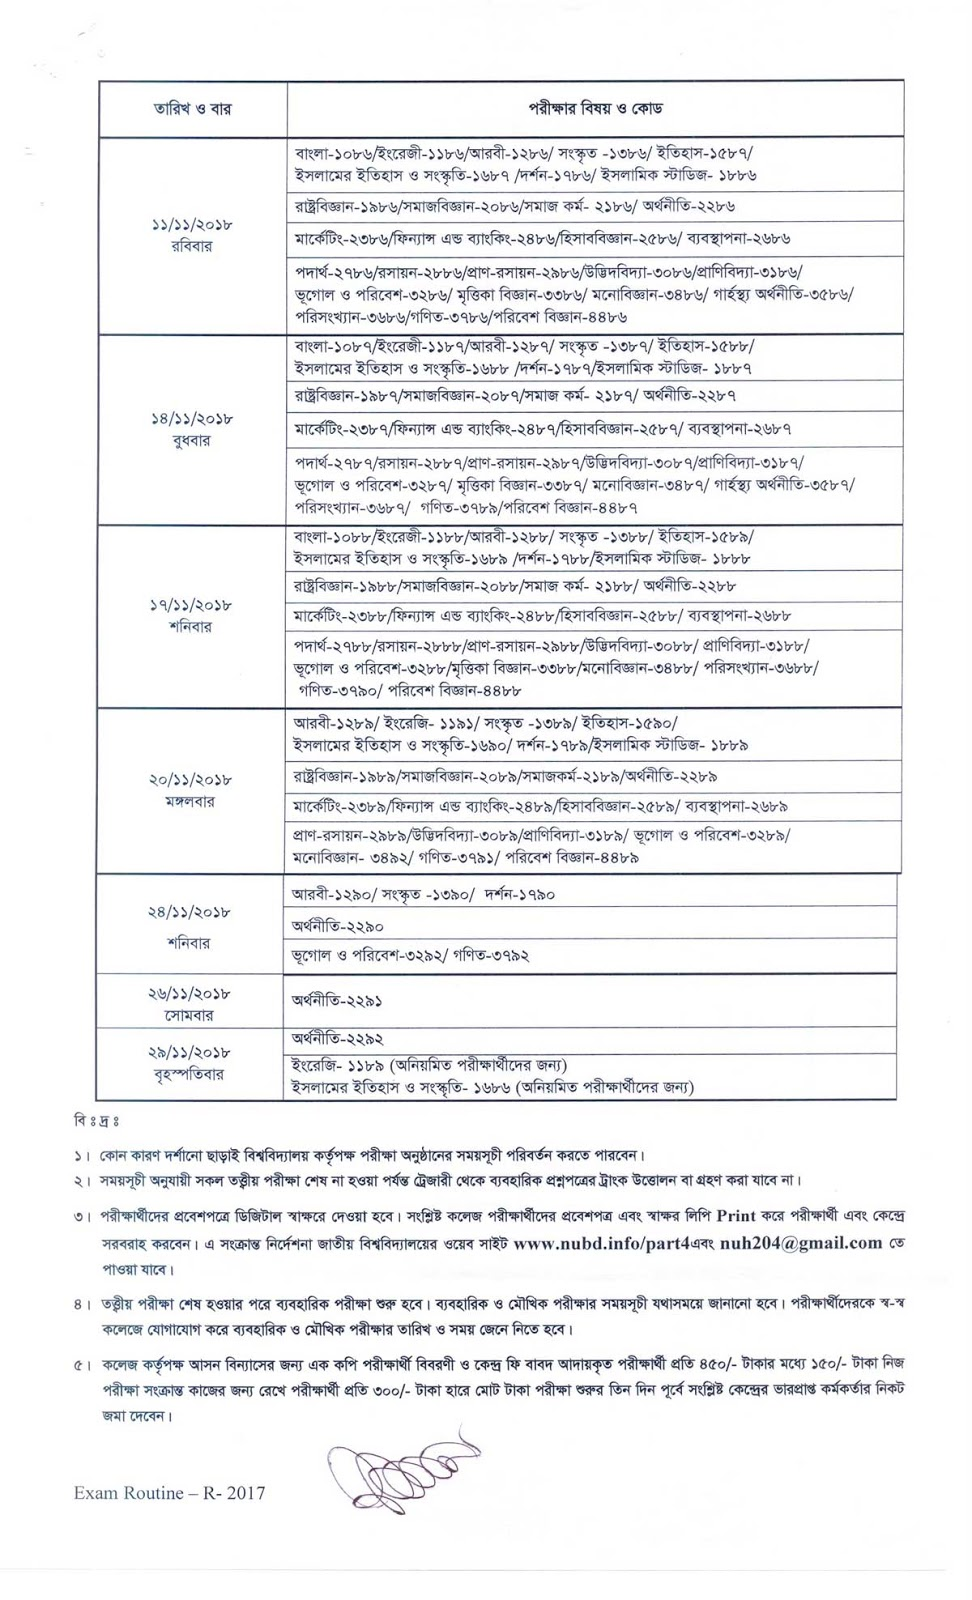 Honours 4th Year Special Exam Routine 2018 2